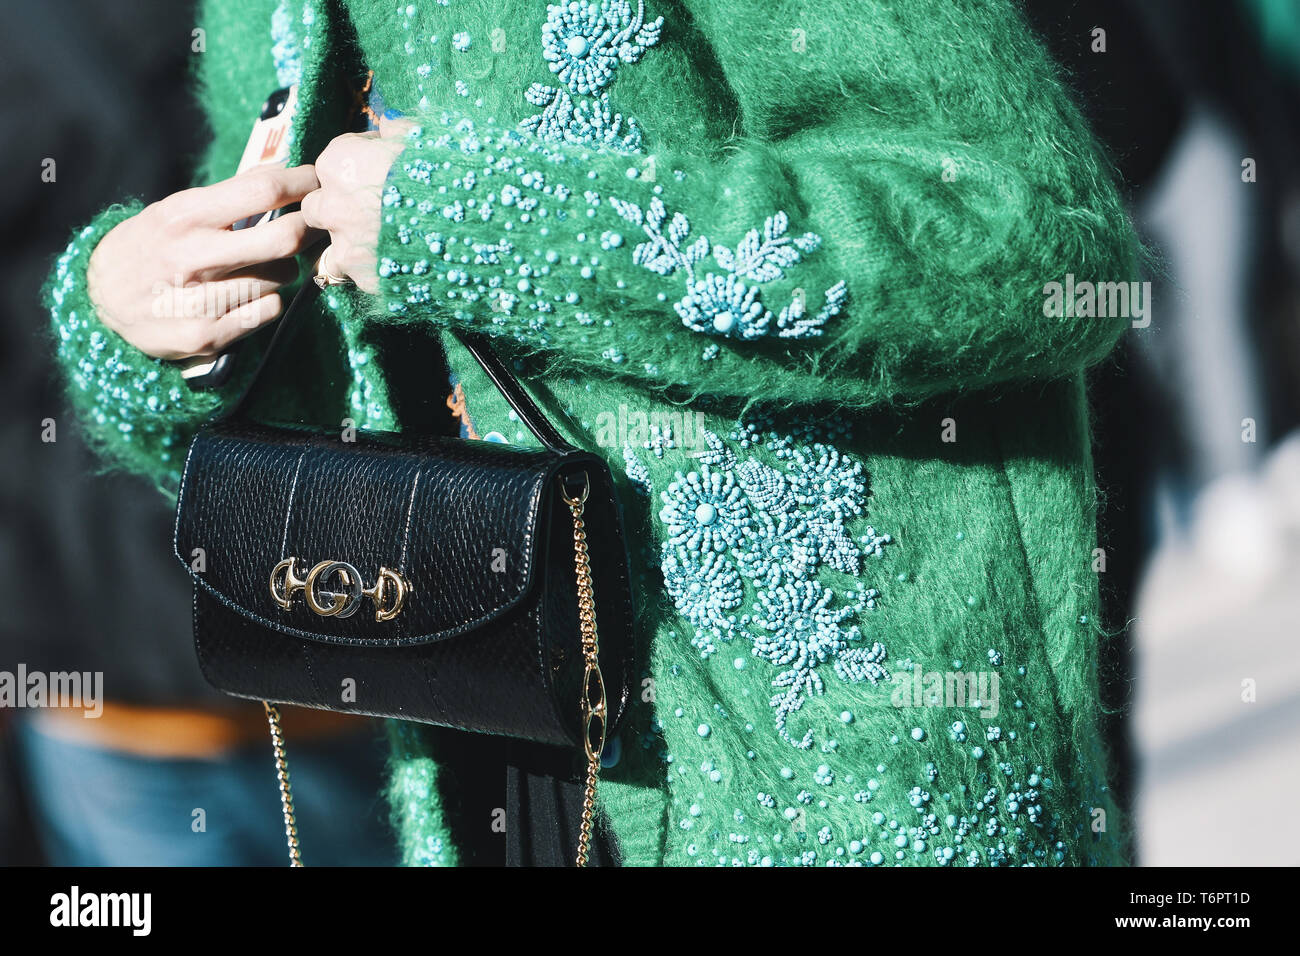 a96f3533 Milan, Italy - February 22, 2019: Street style – Gucci purse detail after